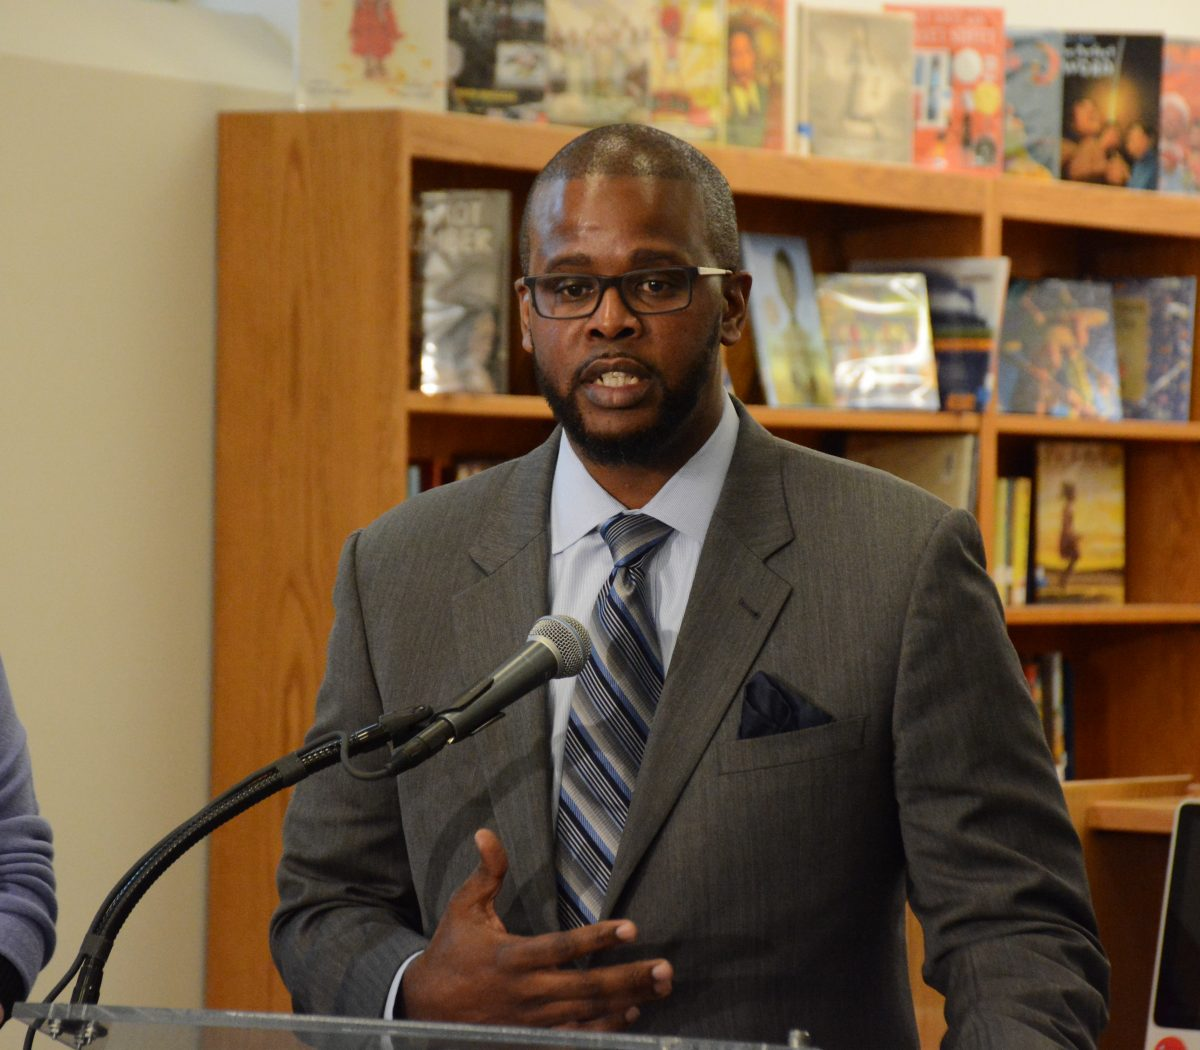 DCPS Chancellor Antwan Wilson speaks during a press conference at Alice Deal Middle School in Northwest on February 1, 2017. /Photo by Roy Lewis